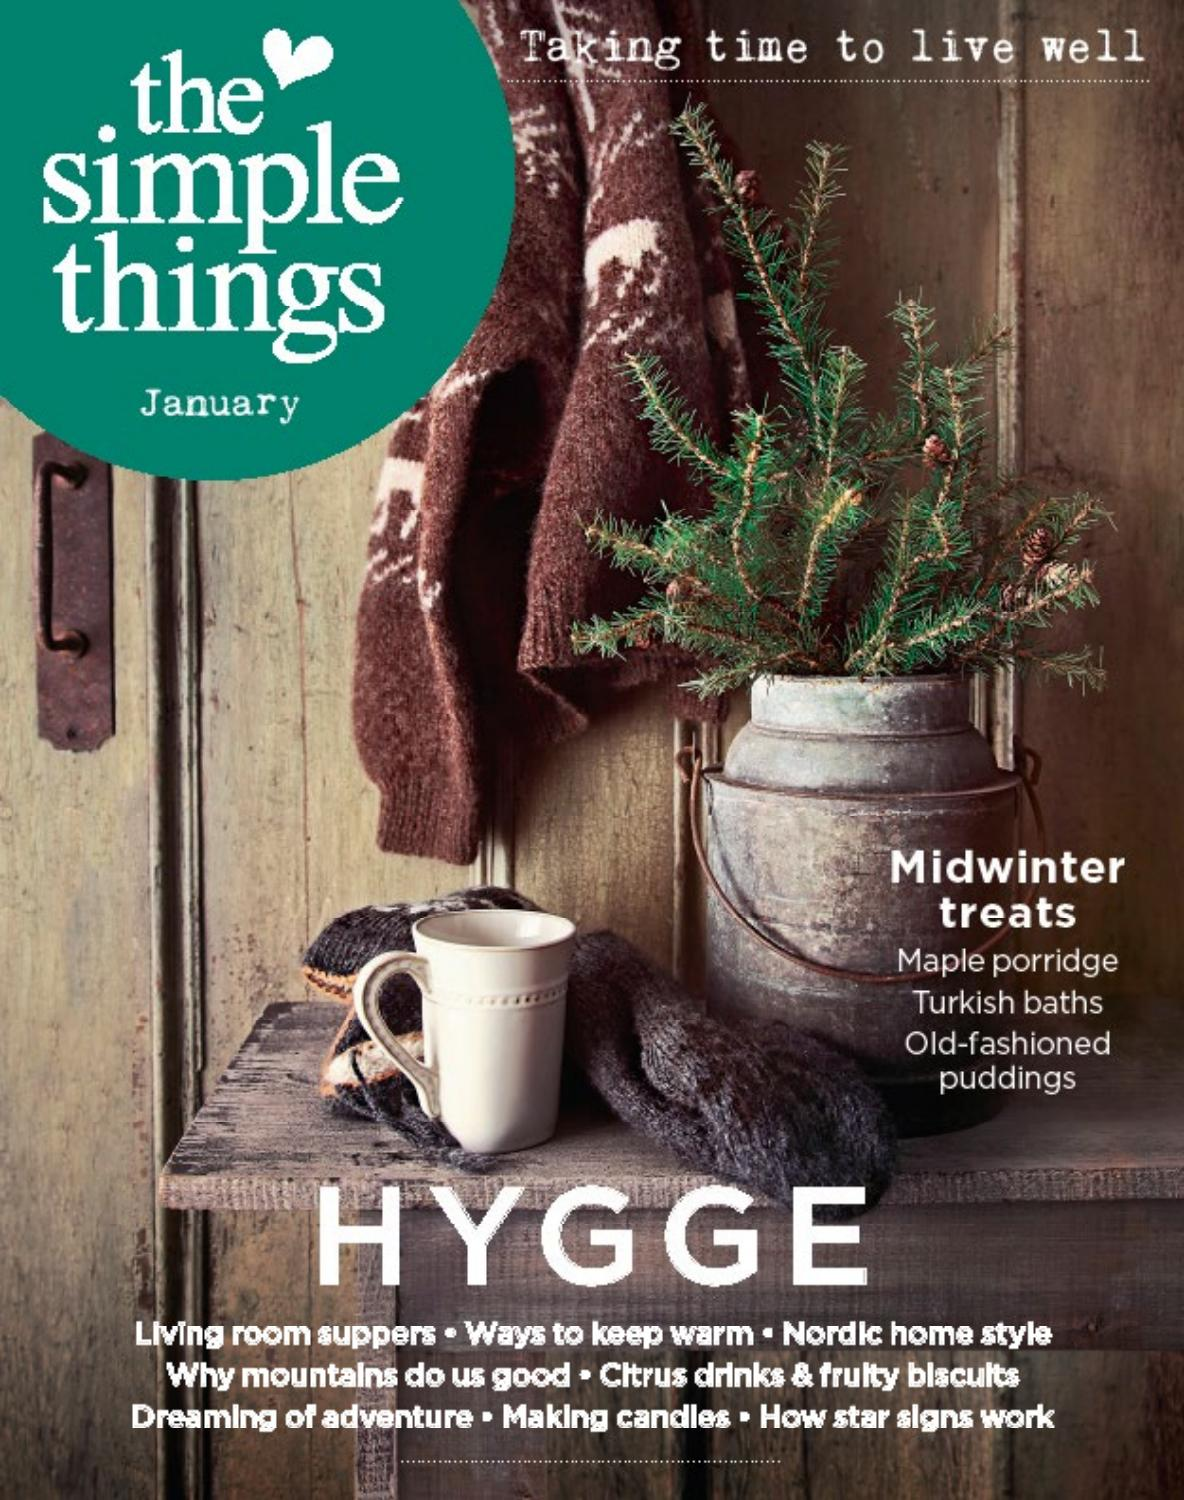 The Simple Things January Issue